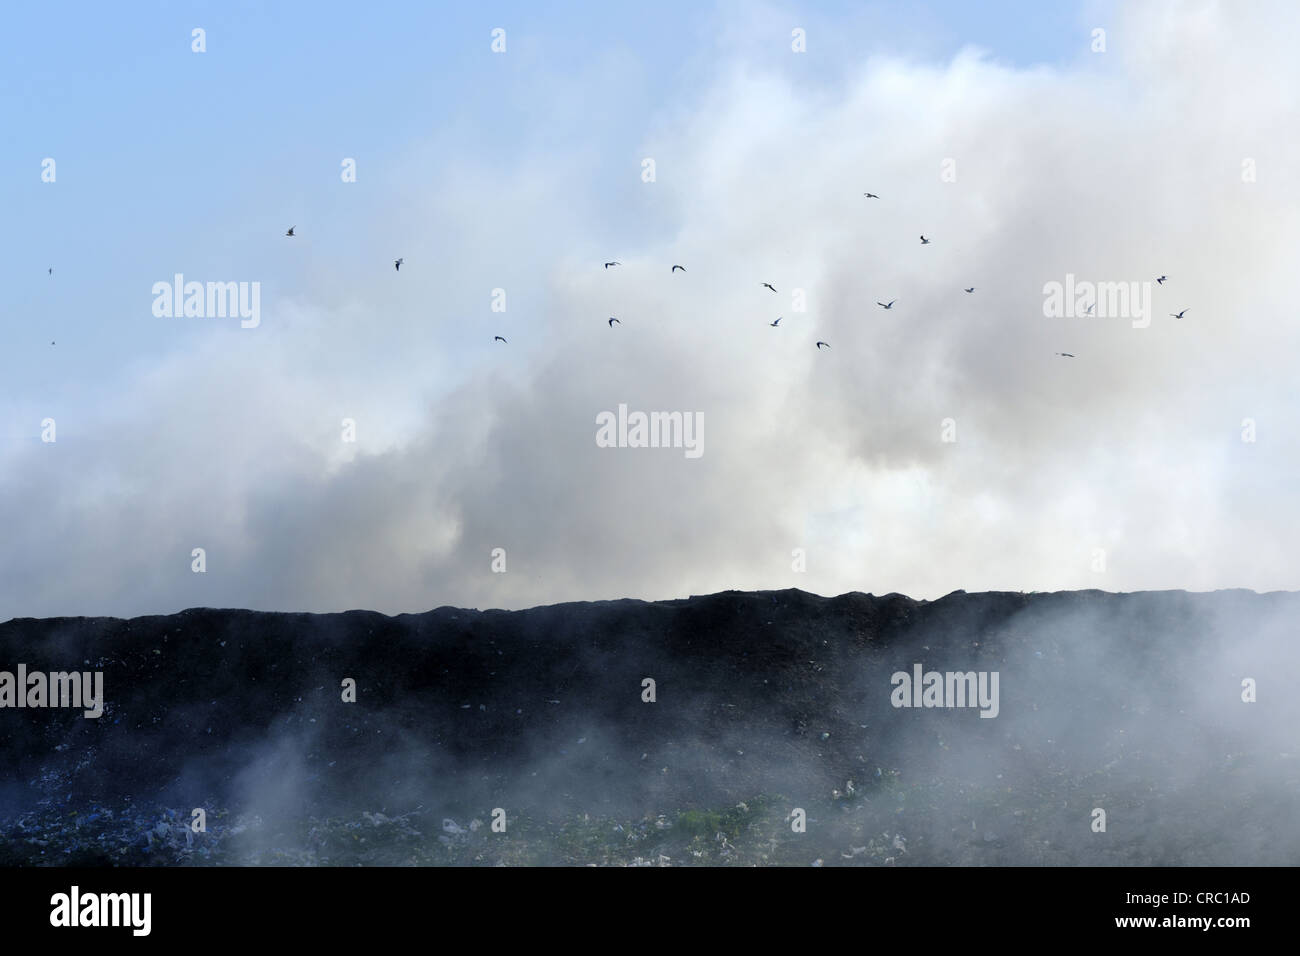 catastrophe, clouds, chemistry, danger, gassing, smoke, - Stock Image